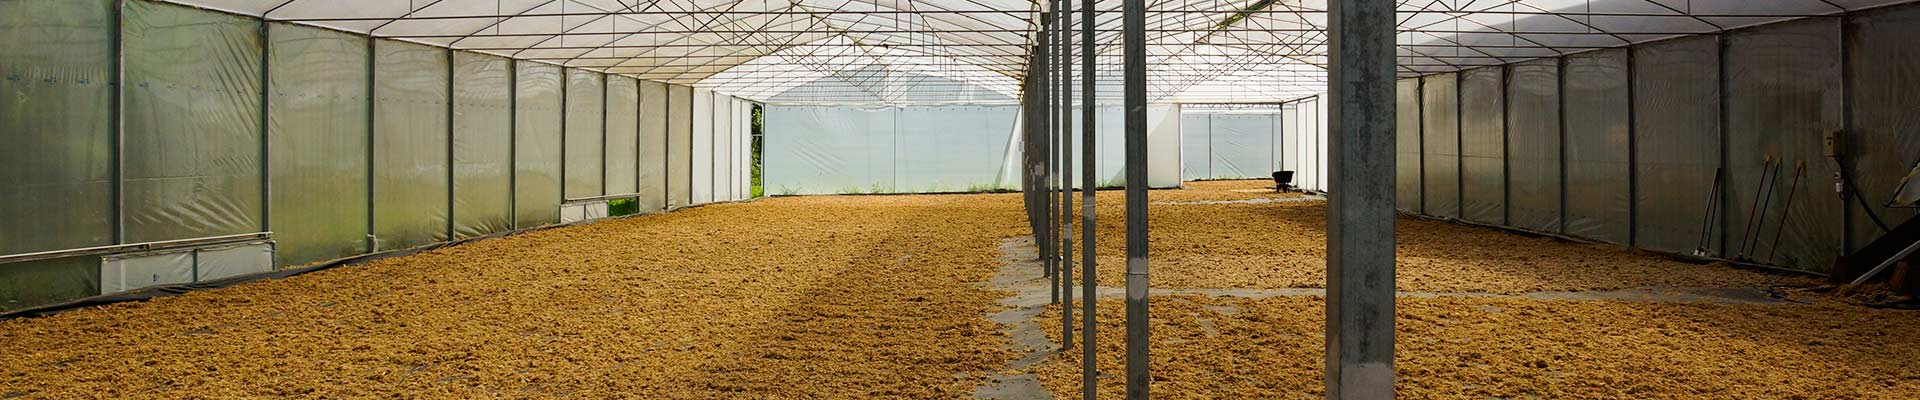 AgroFair-Projects-header-image-Yellow-Pallet